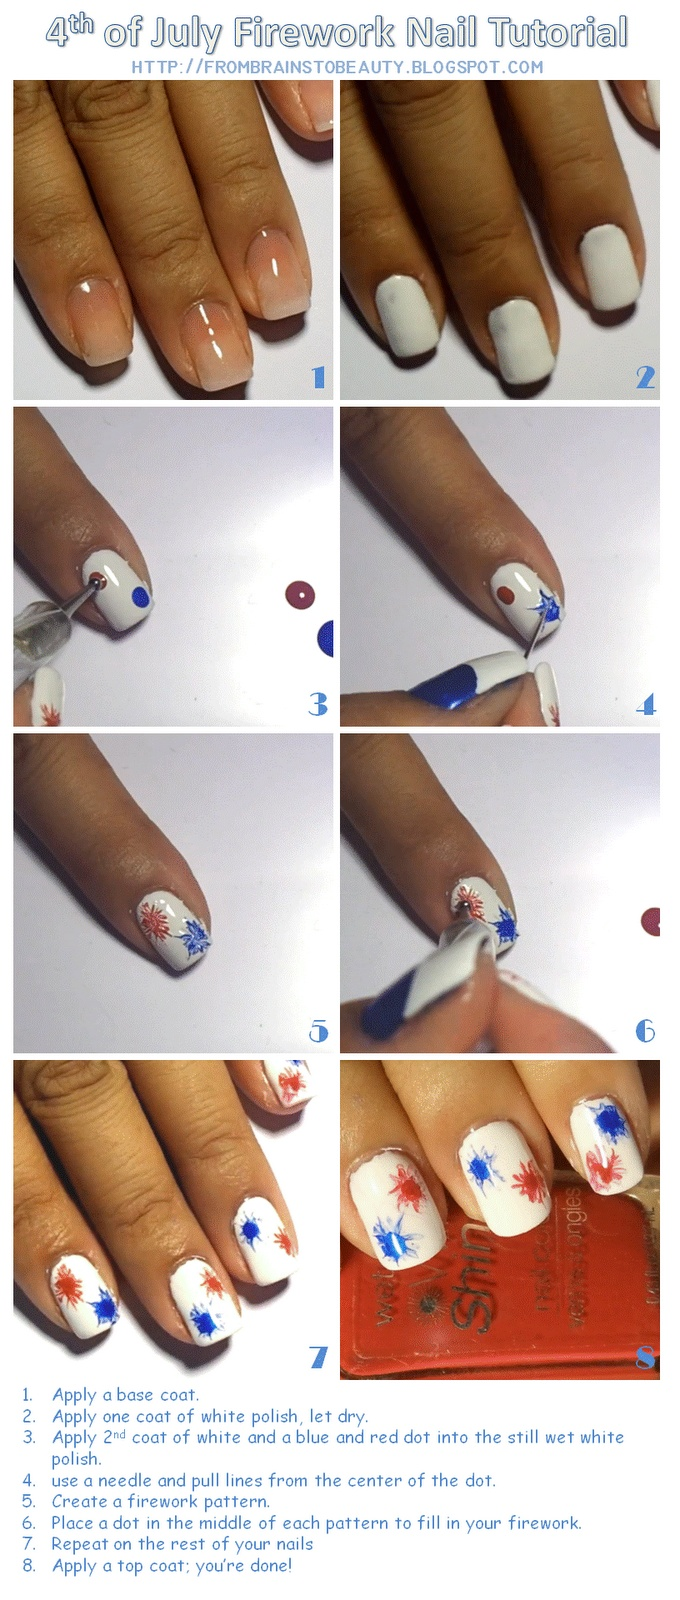 Pinterest How-To 4th of July Fireworks :: Video on Blog